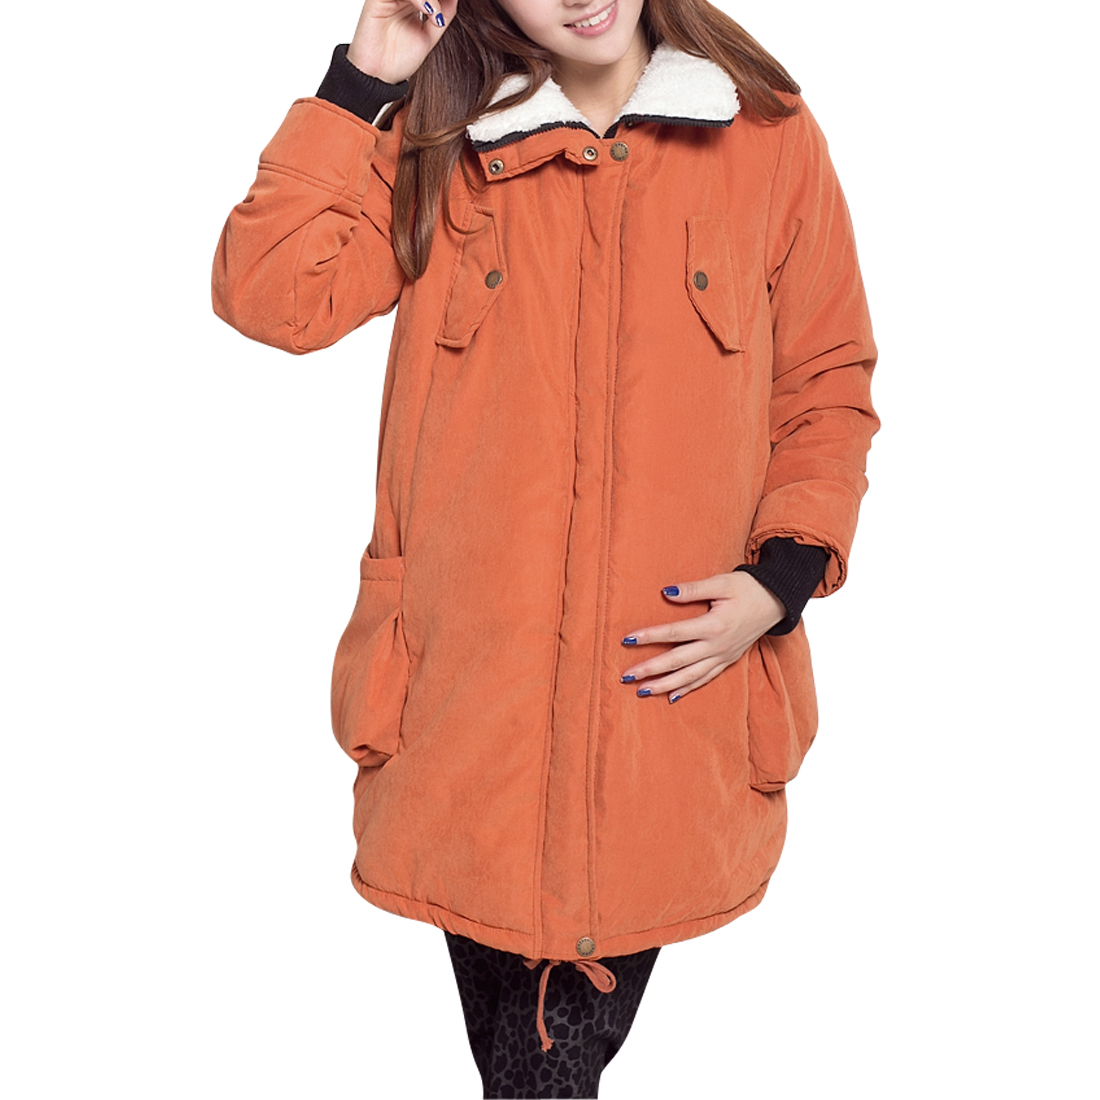 Maternity Chic Orange Long Sleeve Convertible Collar Padded Coat M